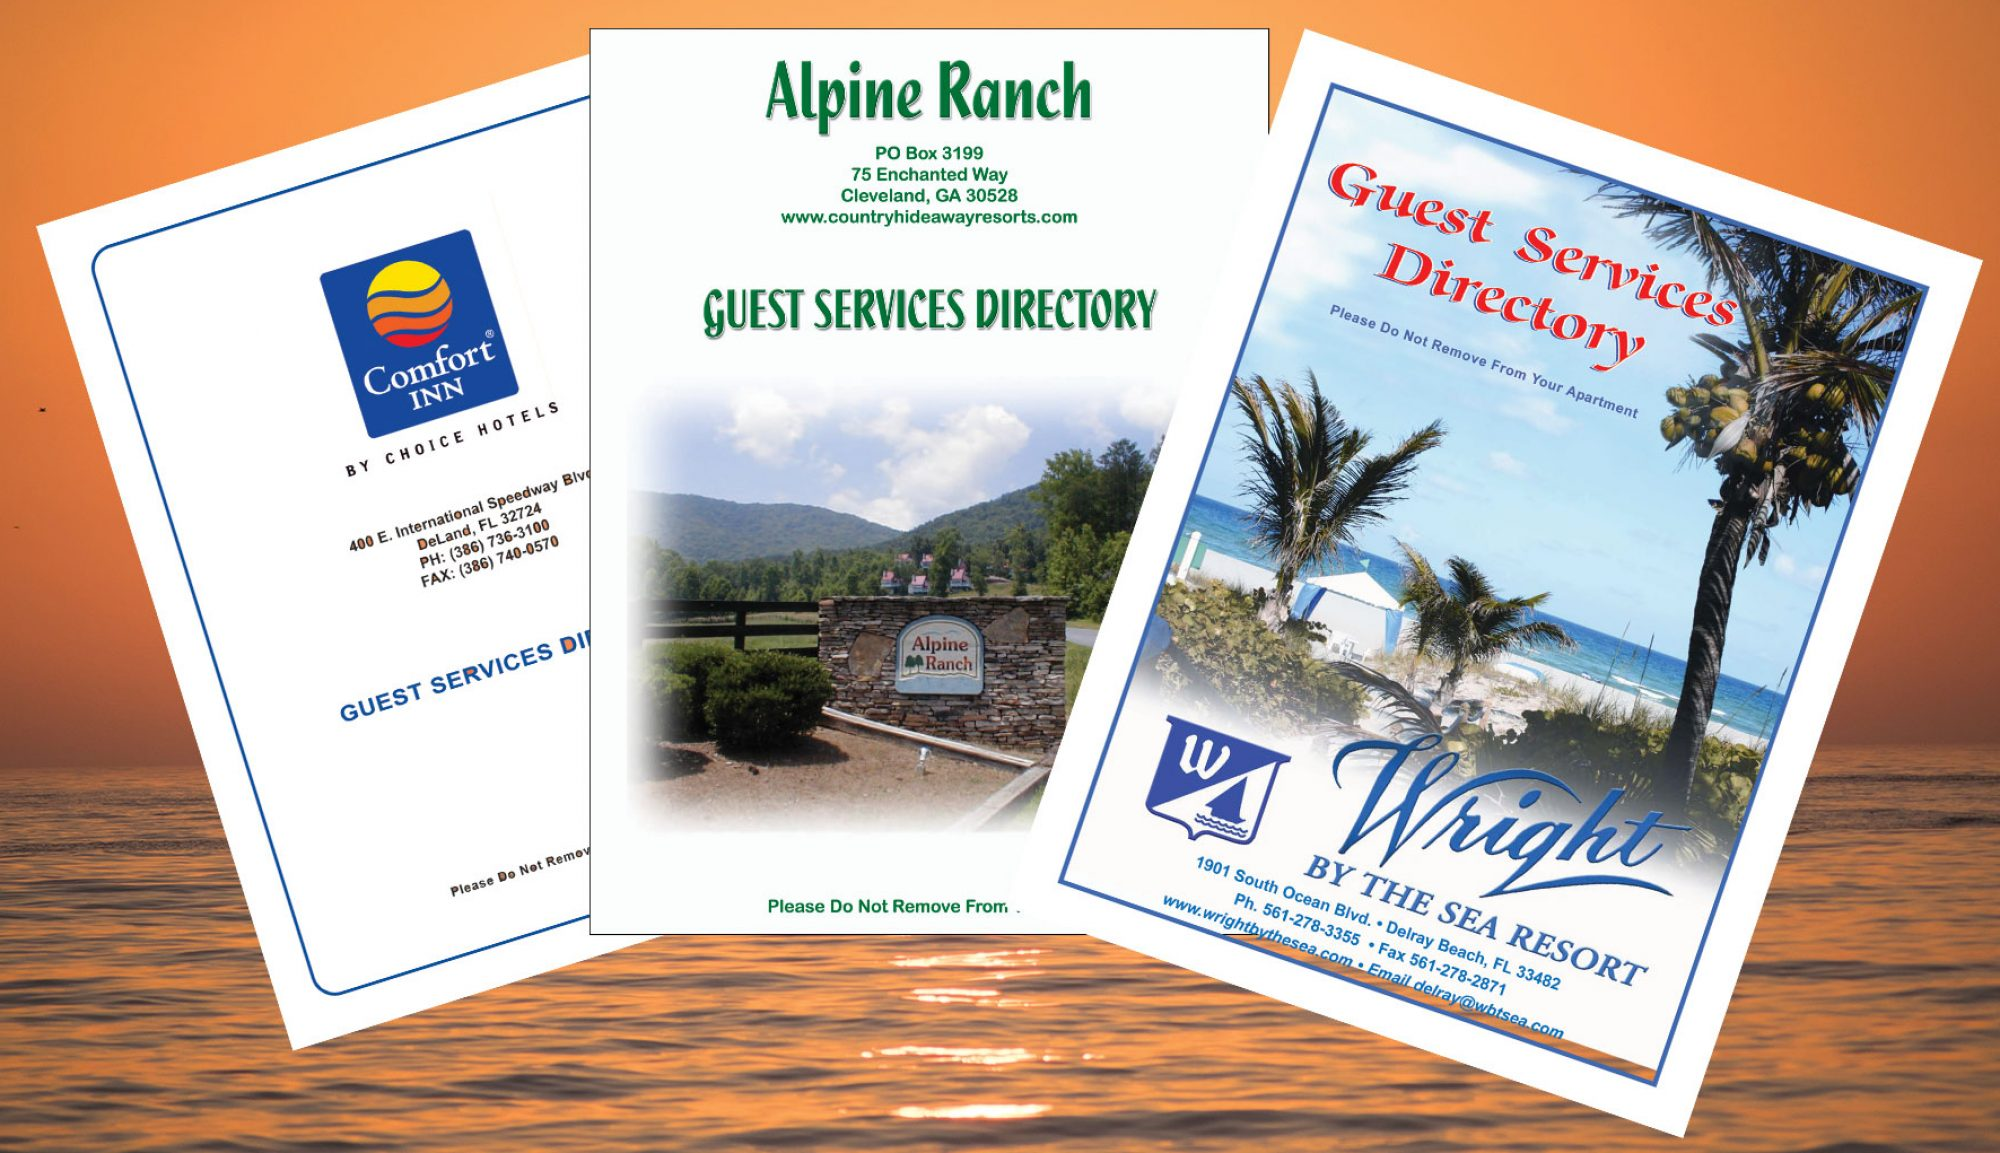 Global Resort Publications